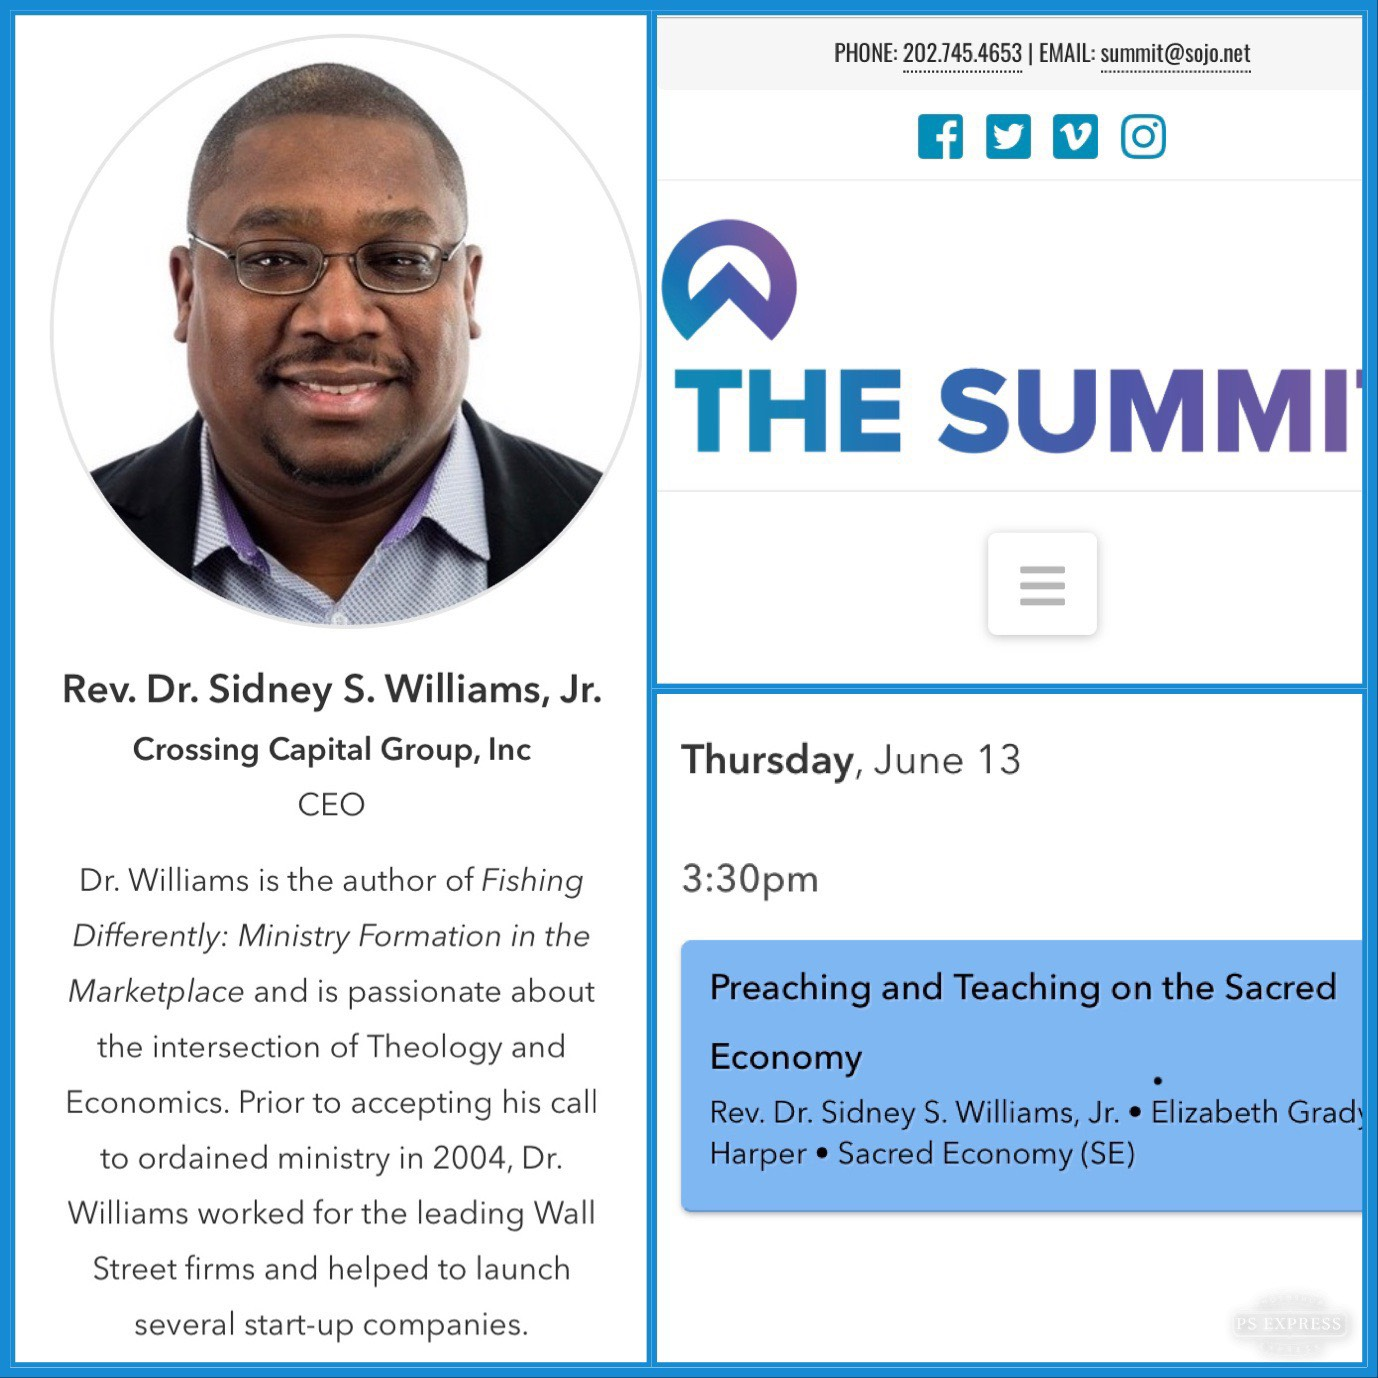 Sidney Williams Preaching and Teaching on the Sacred Economy Summit Conference